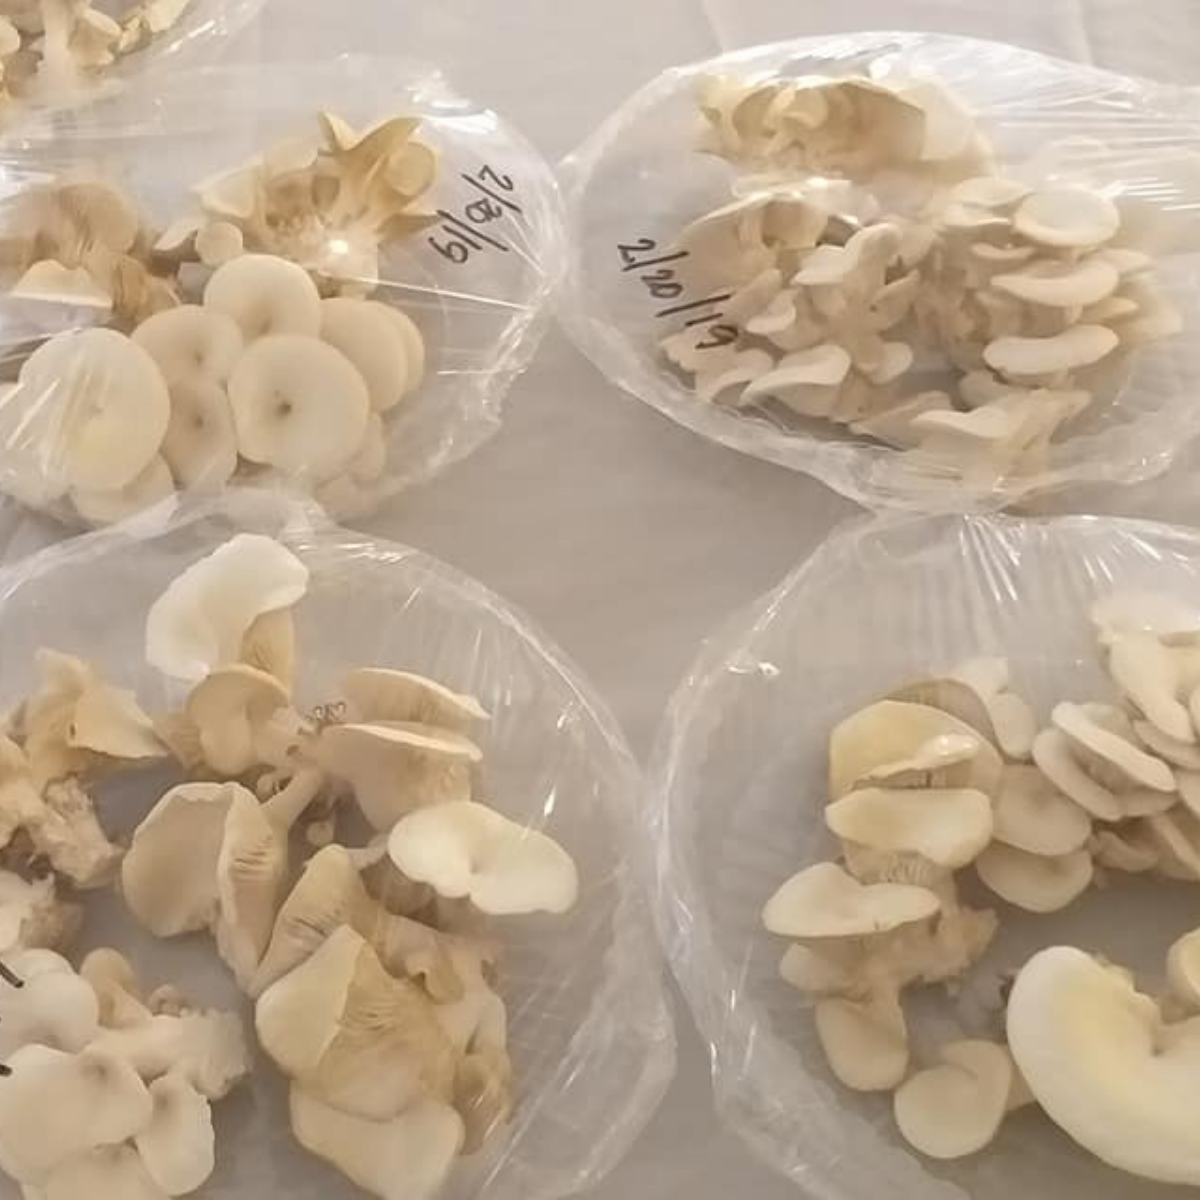 I pack the mushrooms in 250-gram packs  to be delivered to customers. I also write the date of when they were harvested.